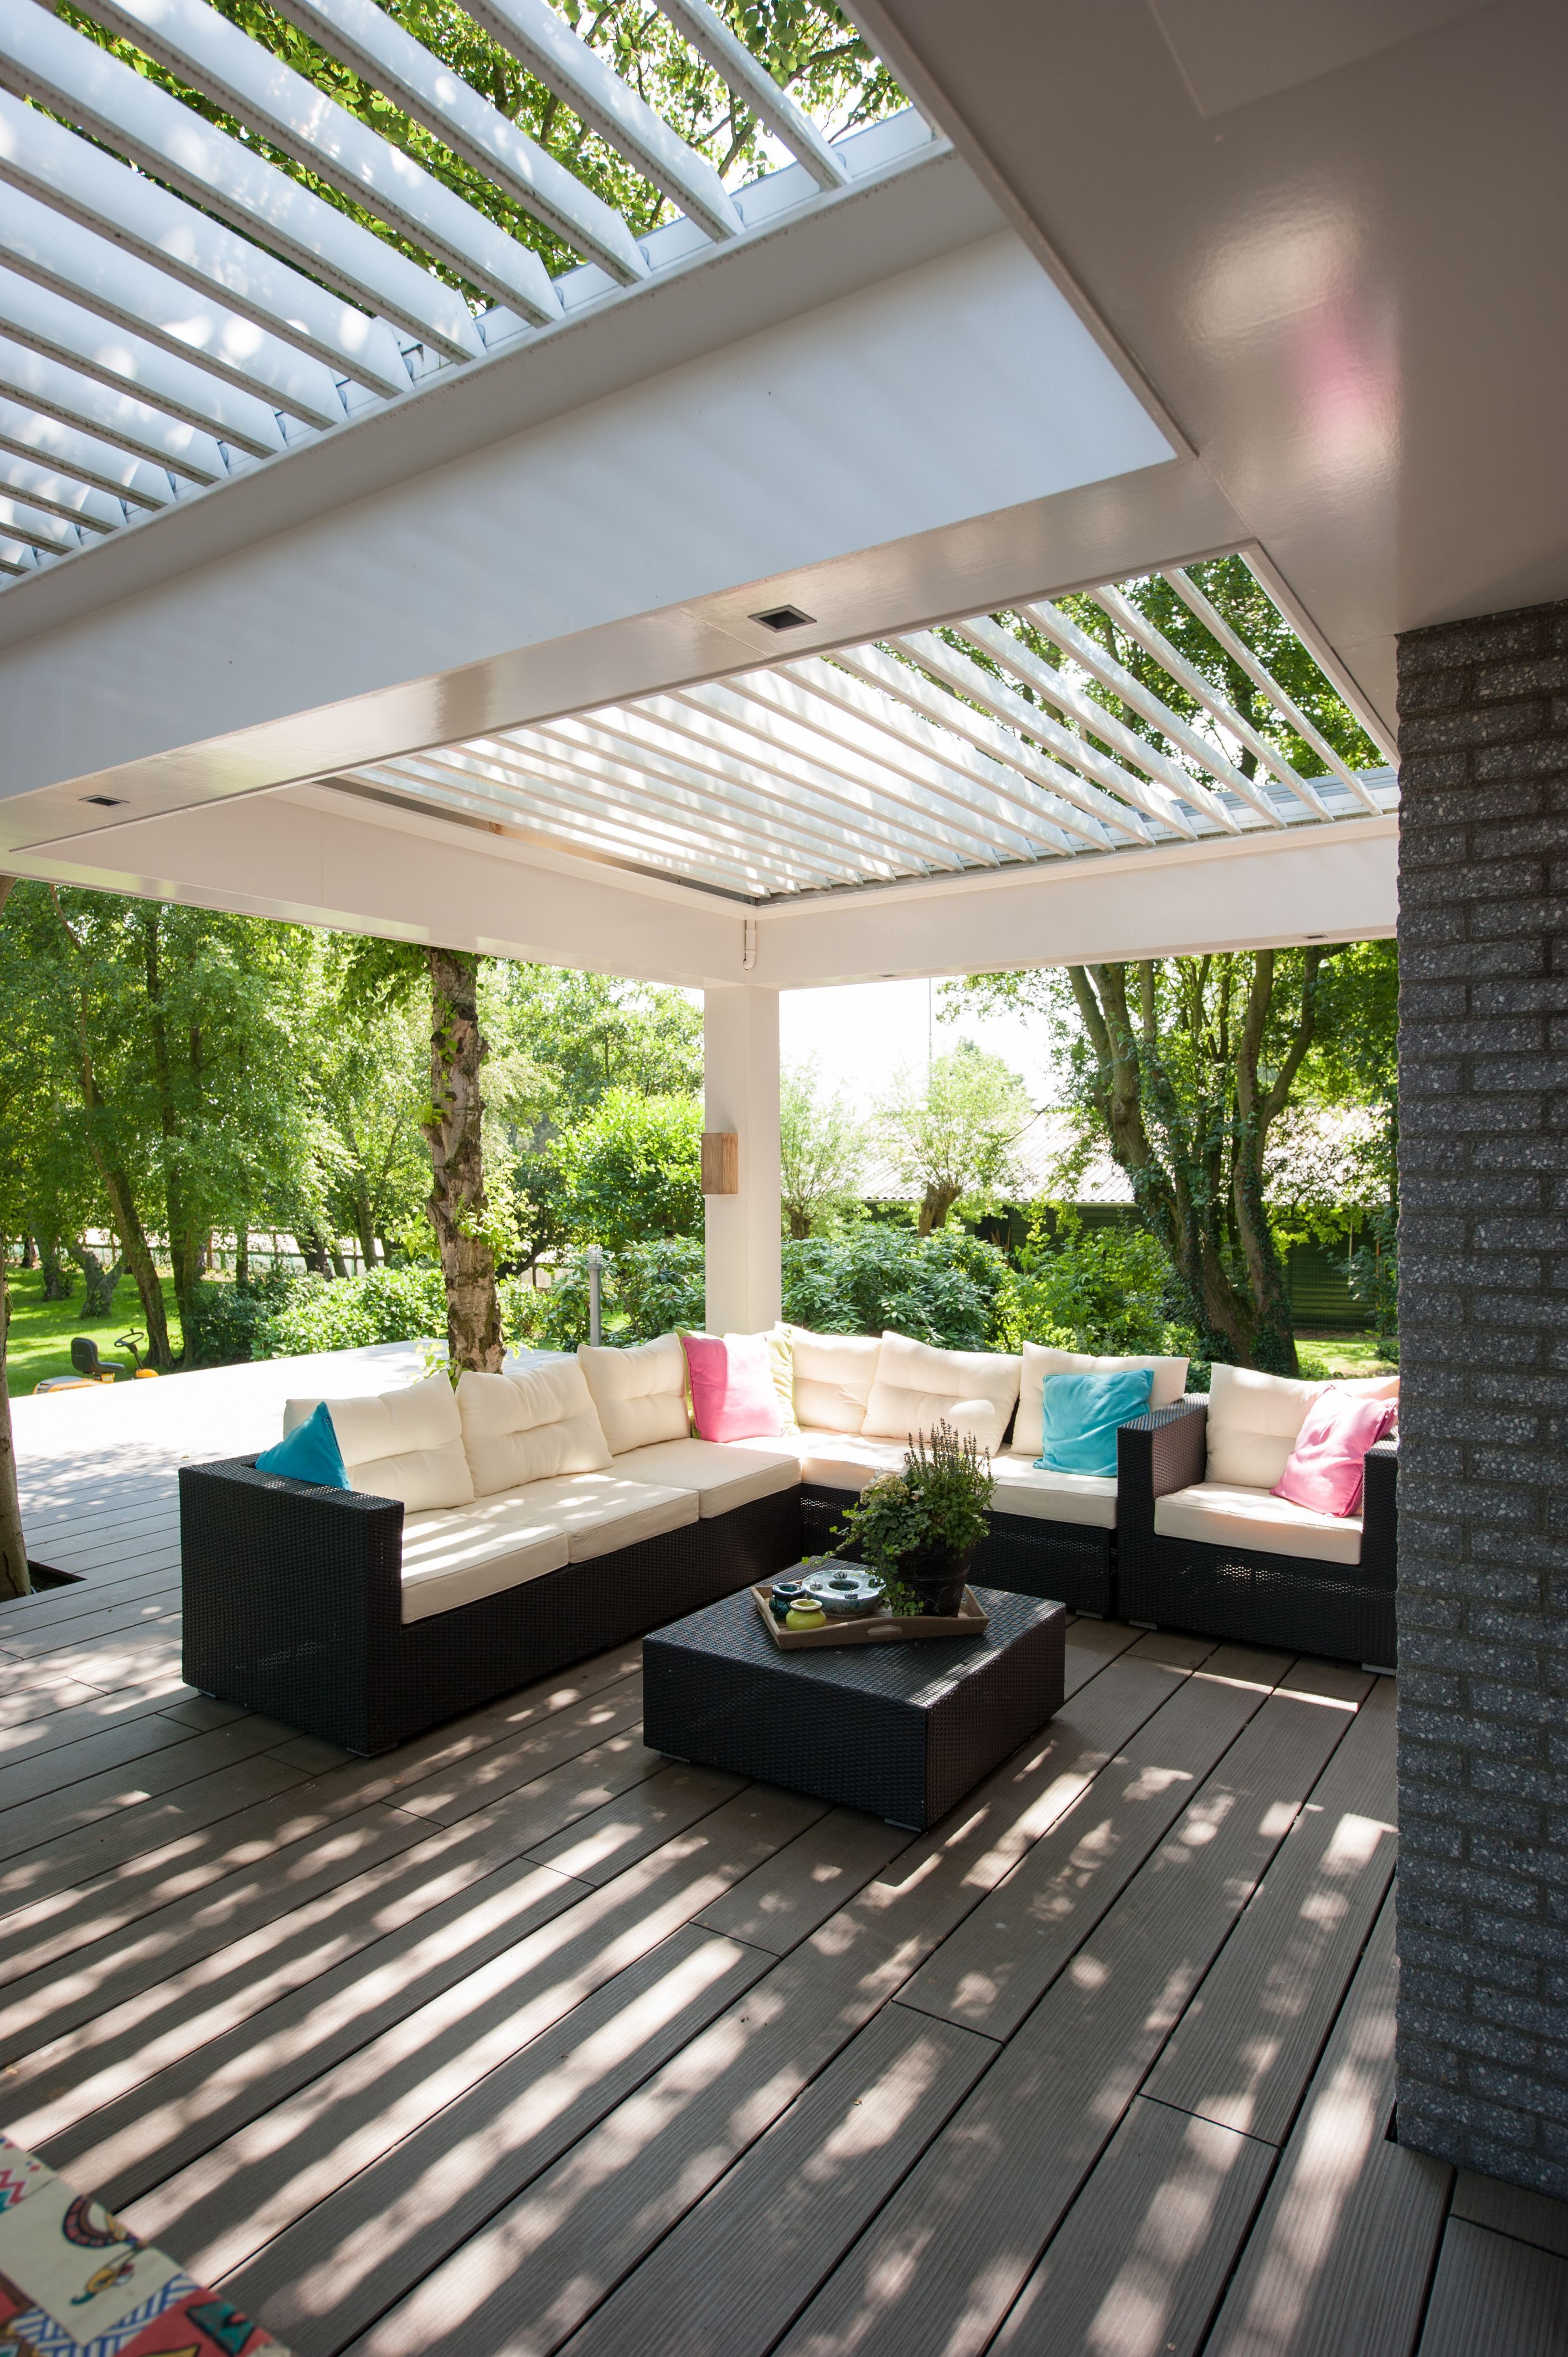 Paradise Outdoor Kitchens For Entertaining Guests Buitenkamers Moderne Patio Achtertuinen